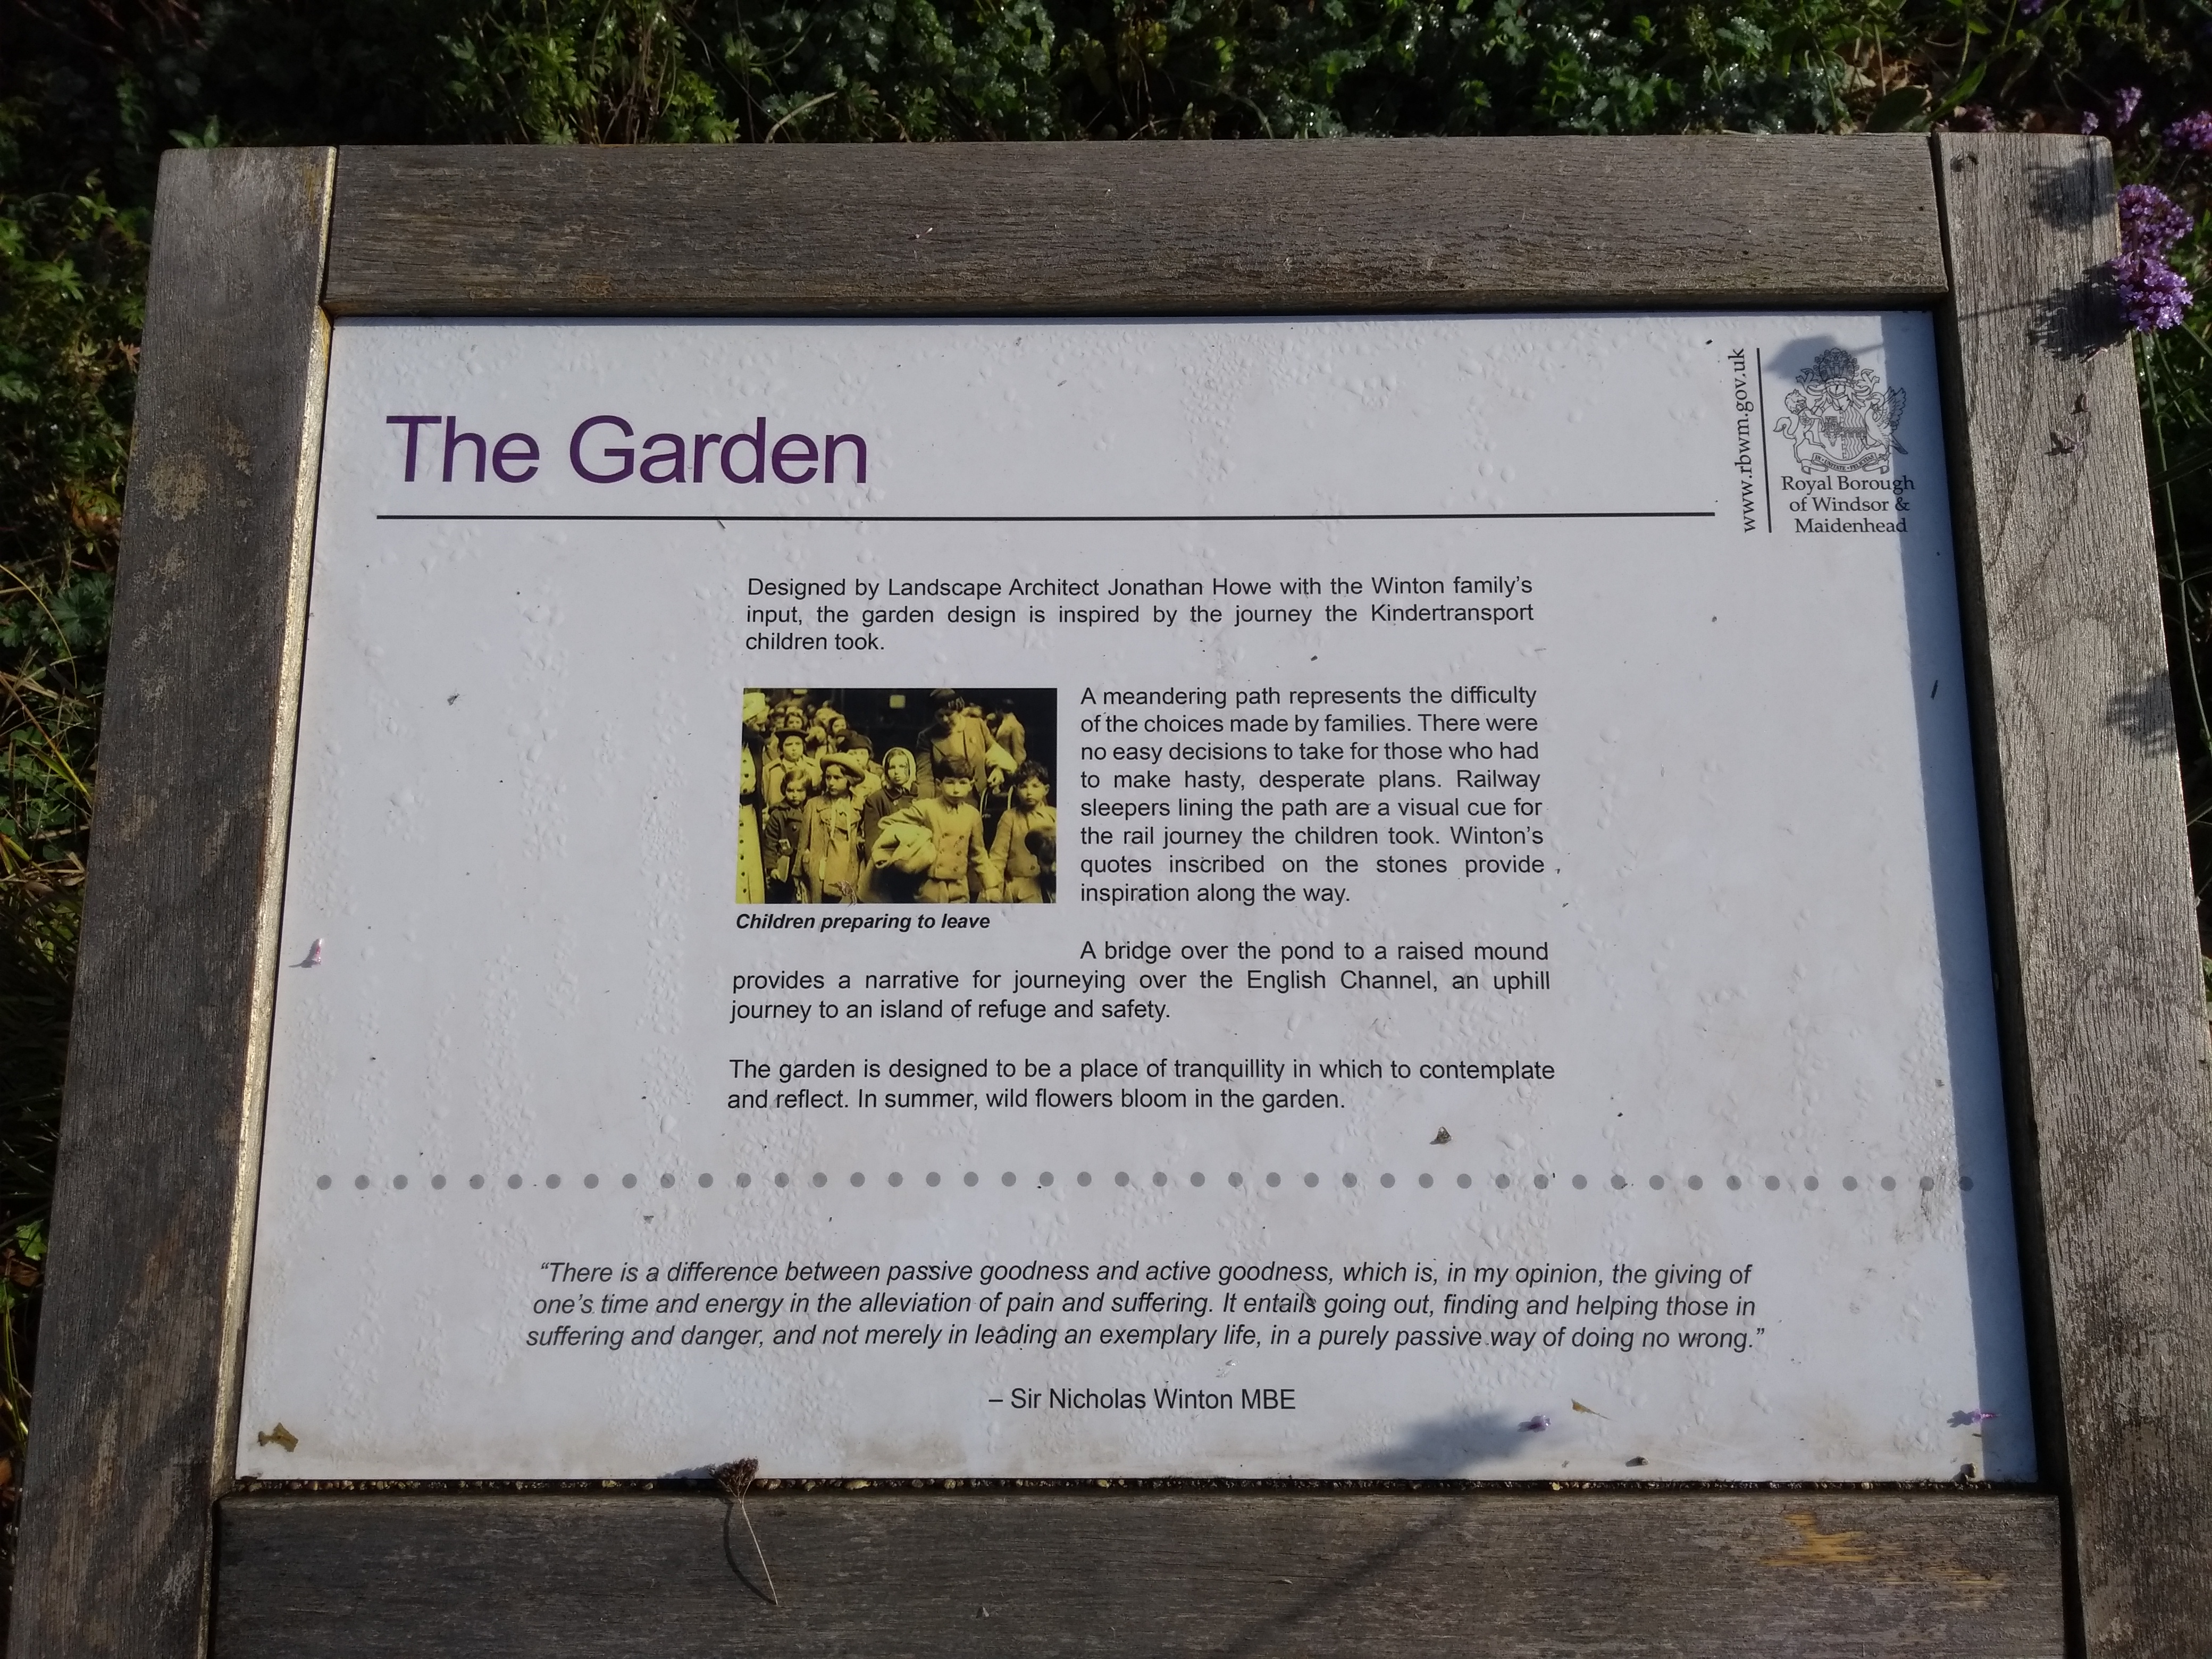 About the Garden